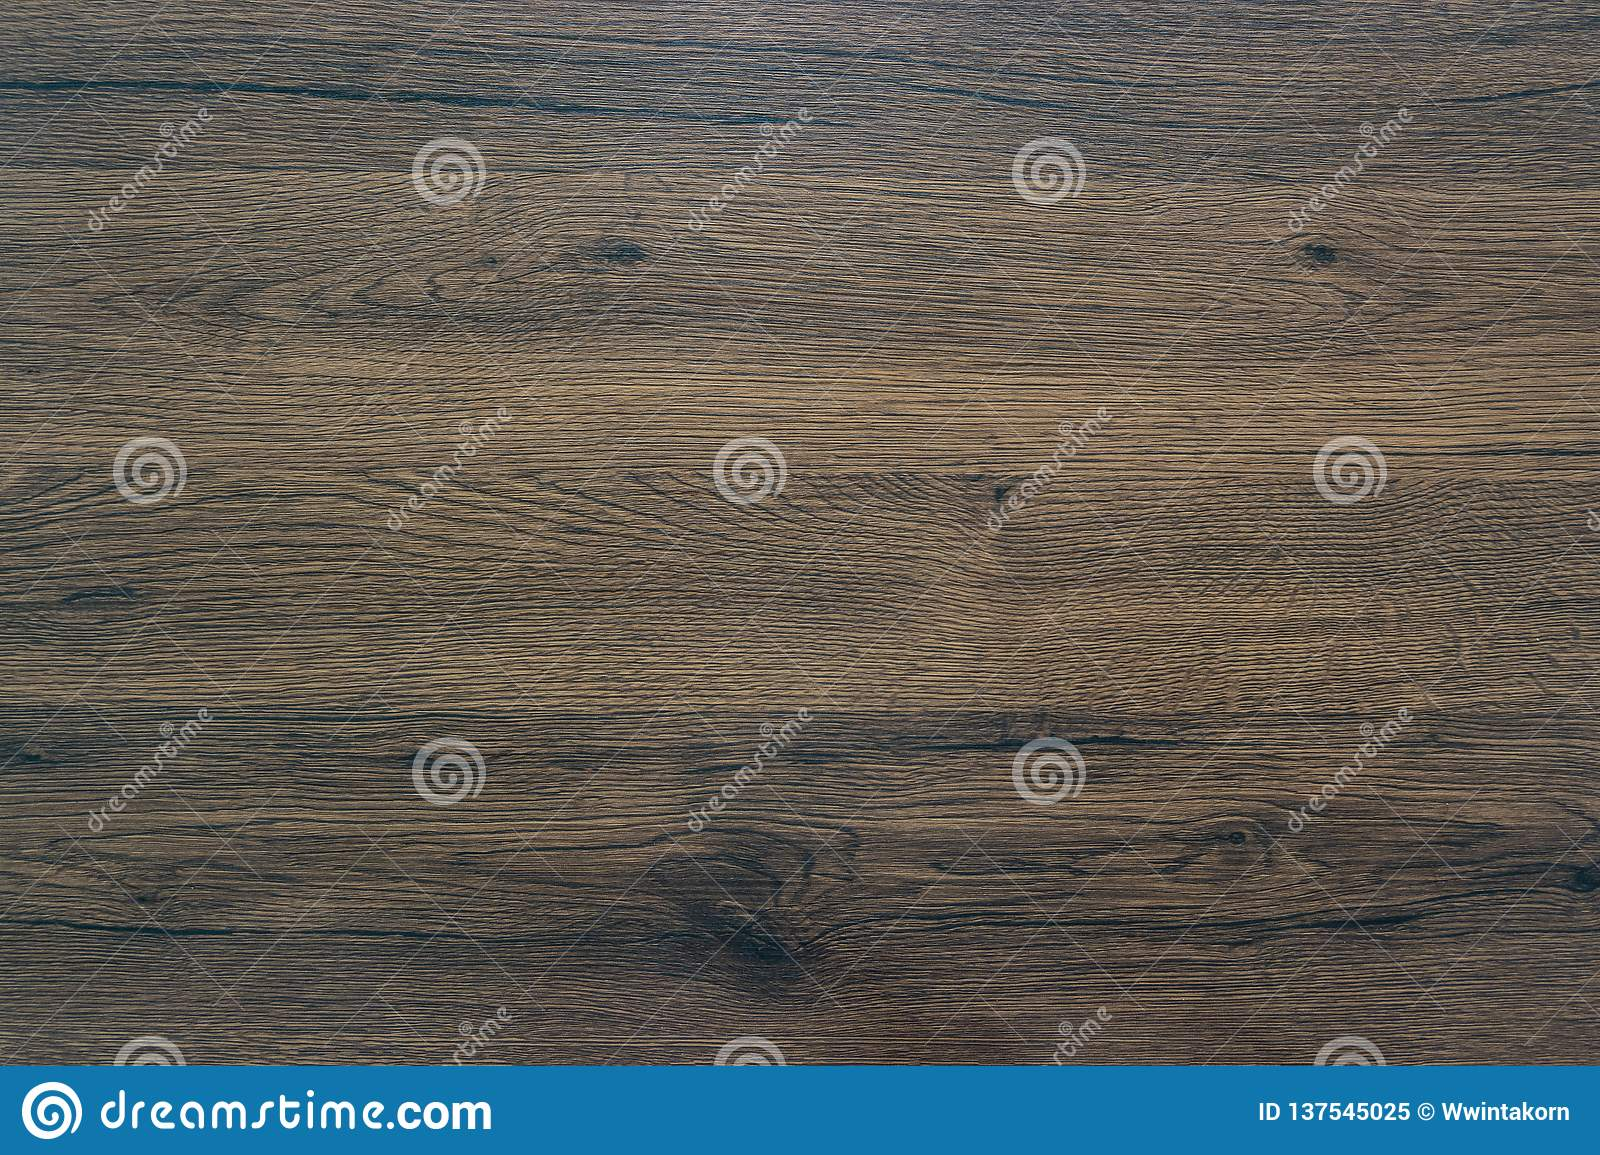 044924a30fc Close up textured background from natural wood pattern very large seamless  texture of wooden material jpg